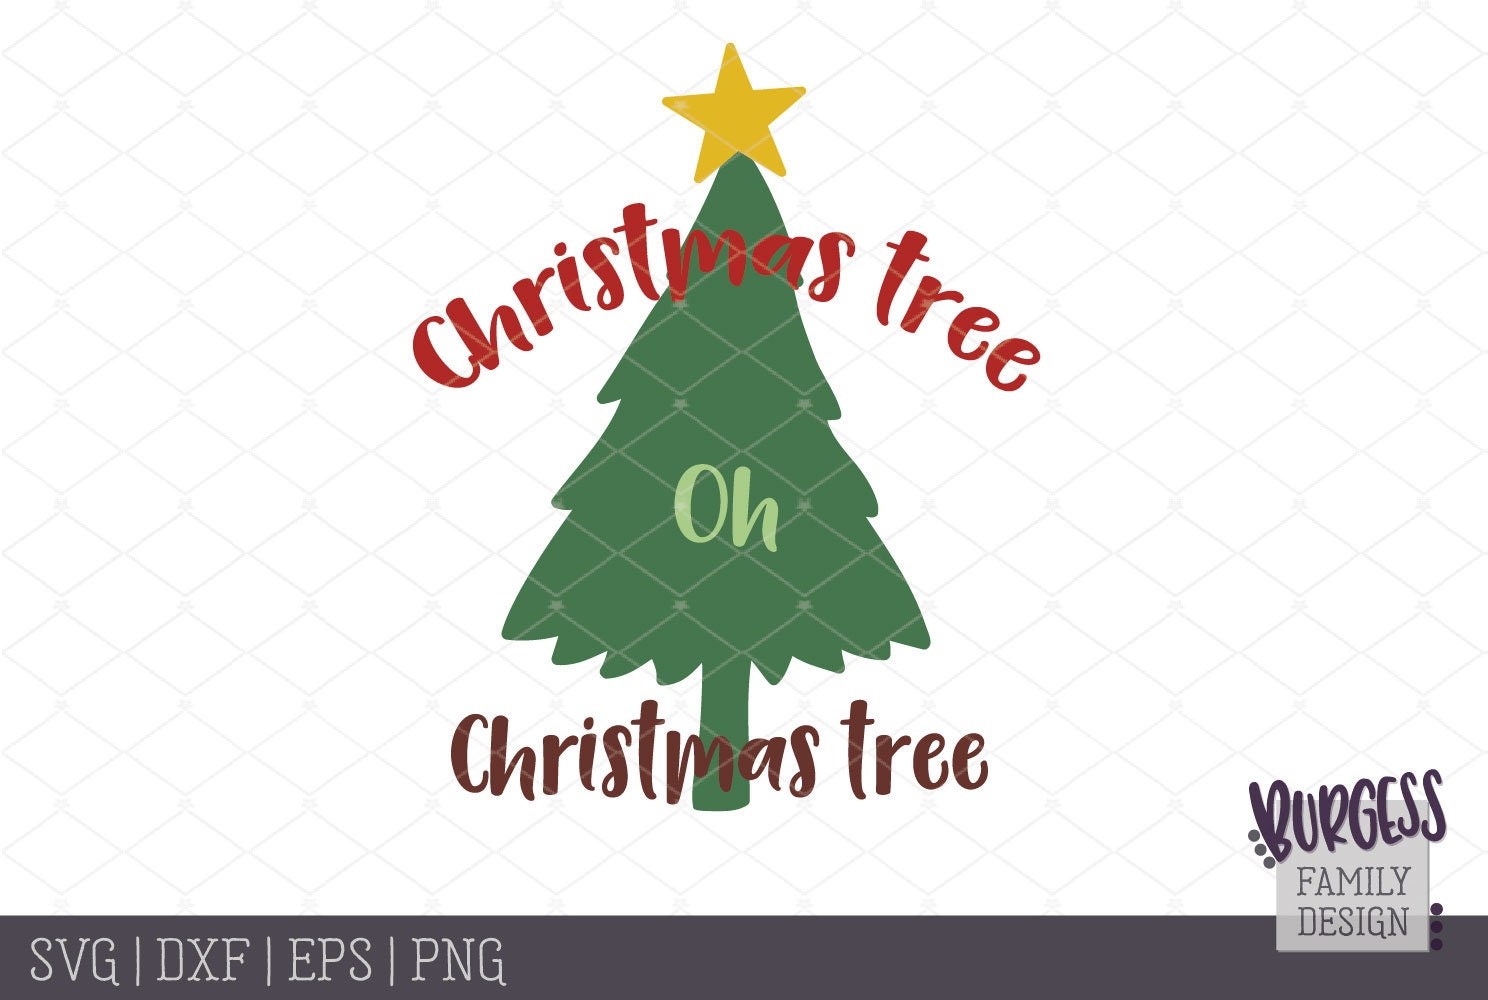 Christmas tree oh Christmas tree svg dxf eps png | Etsy